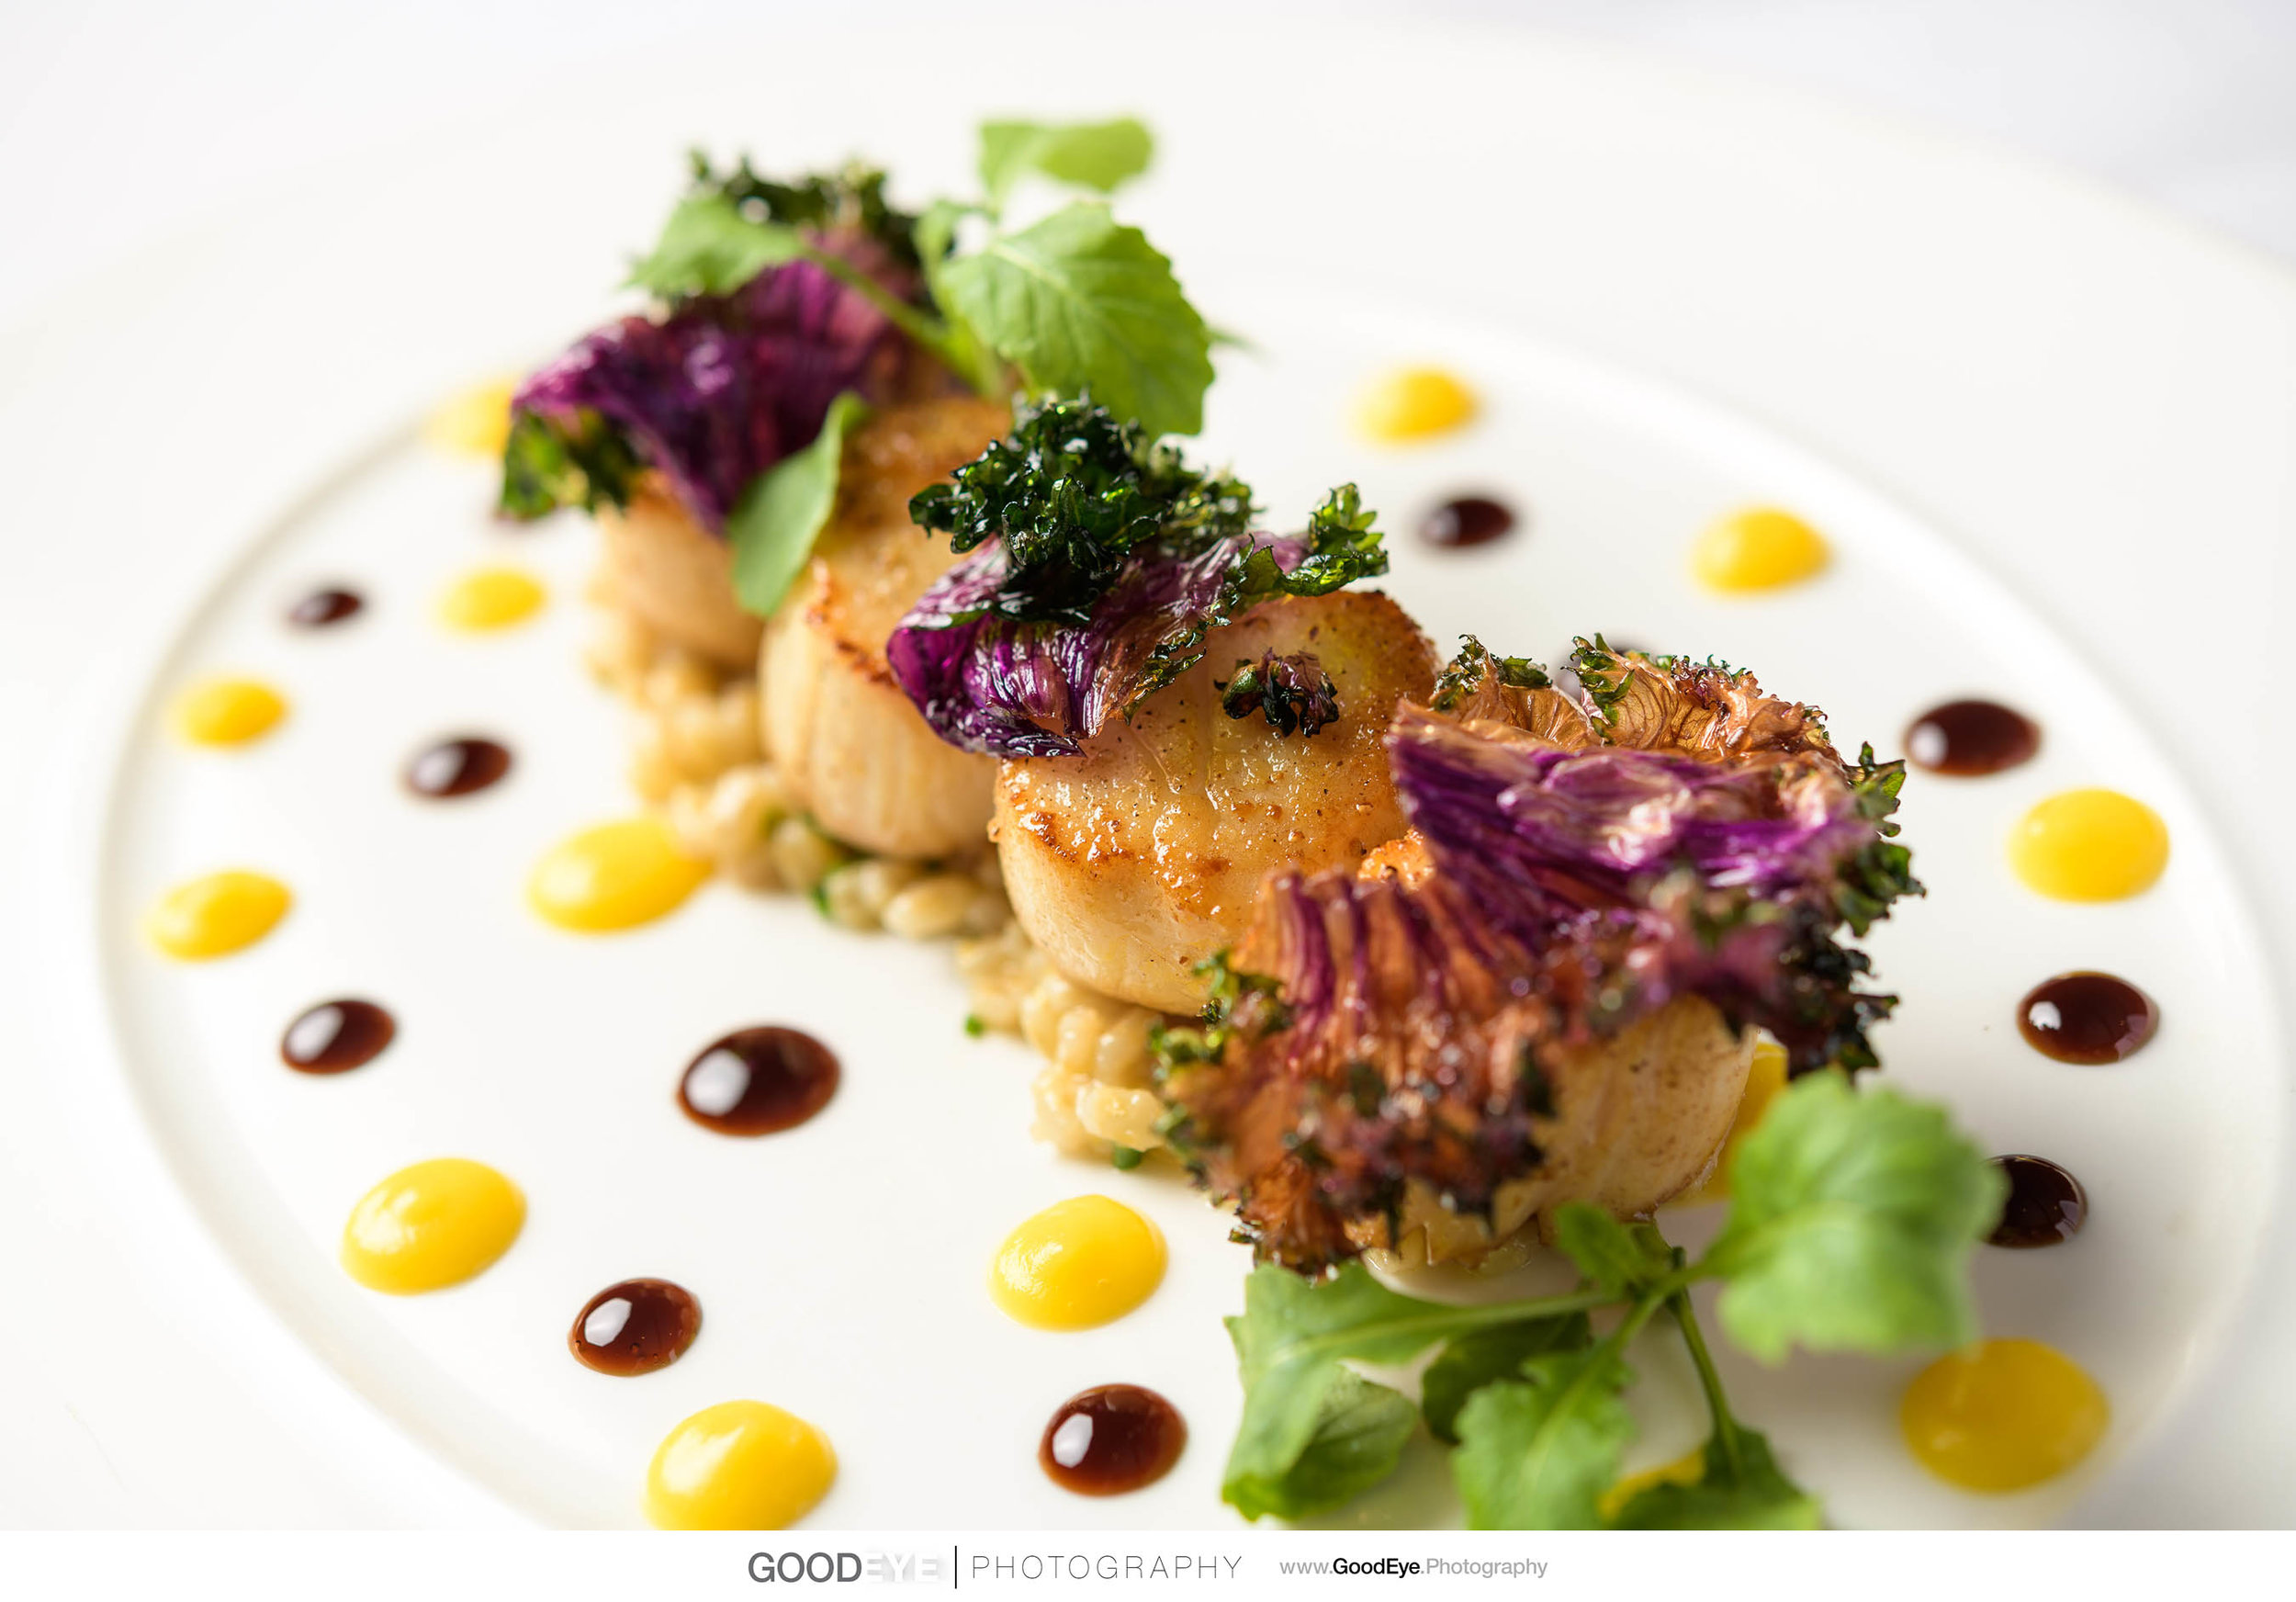 Palo Alto restaurant photography - food, interiors, drinks - by